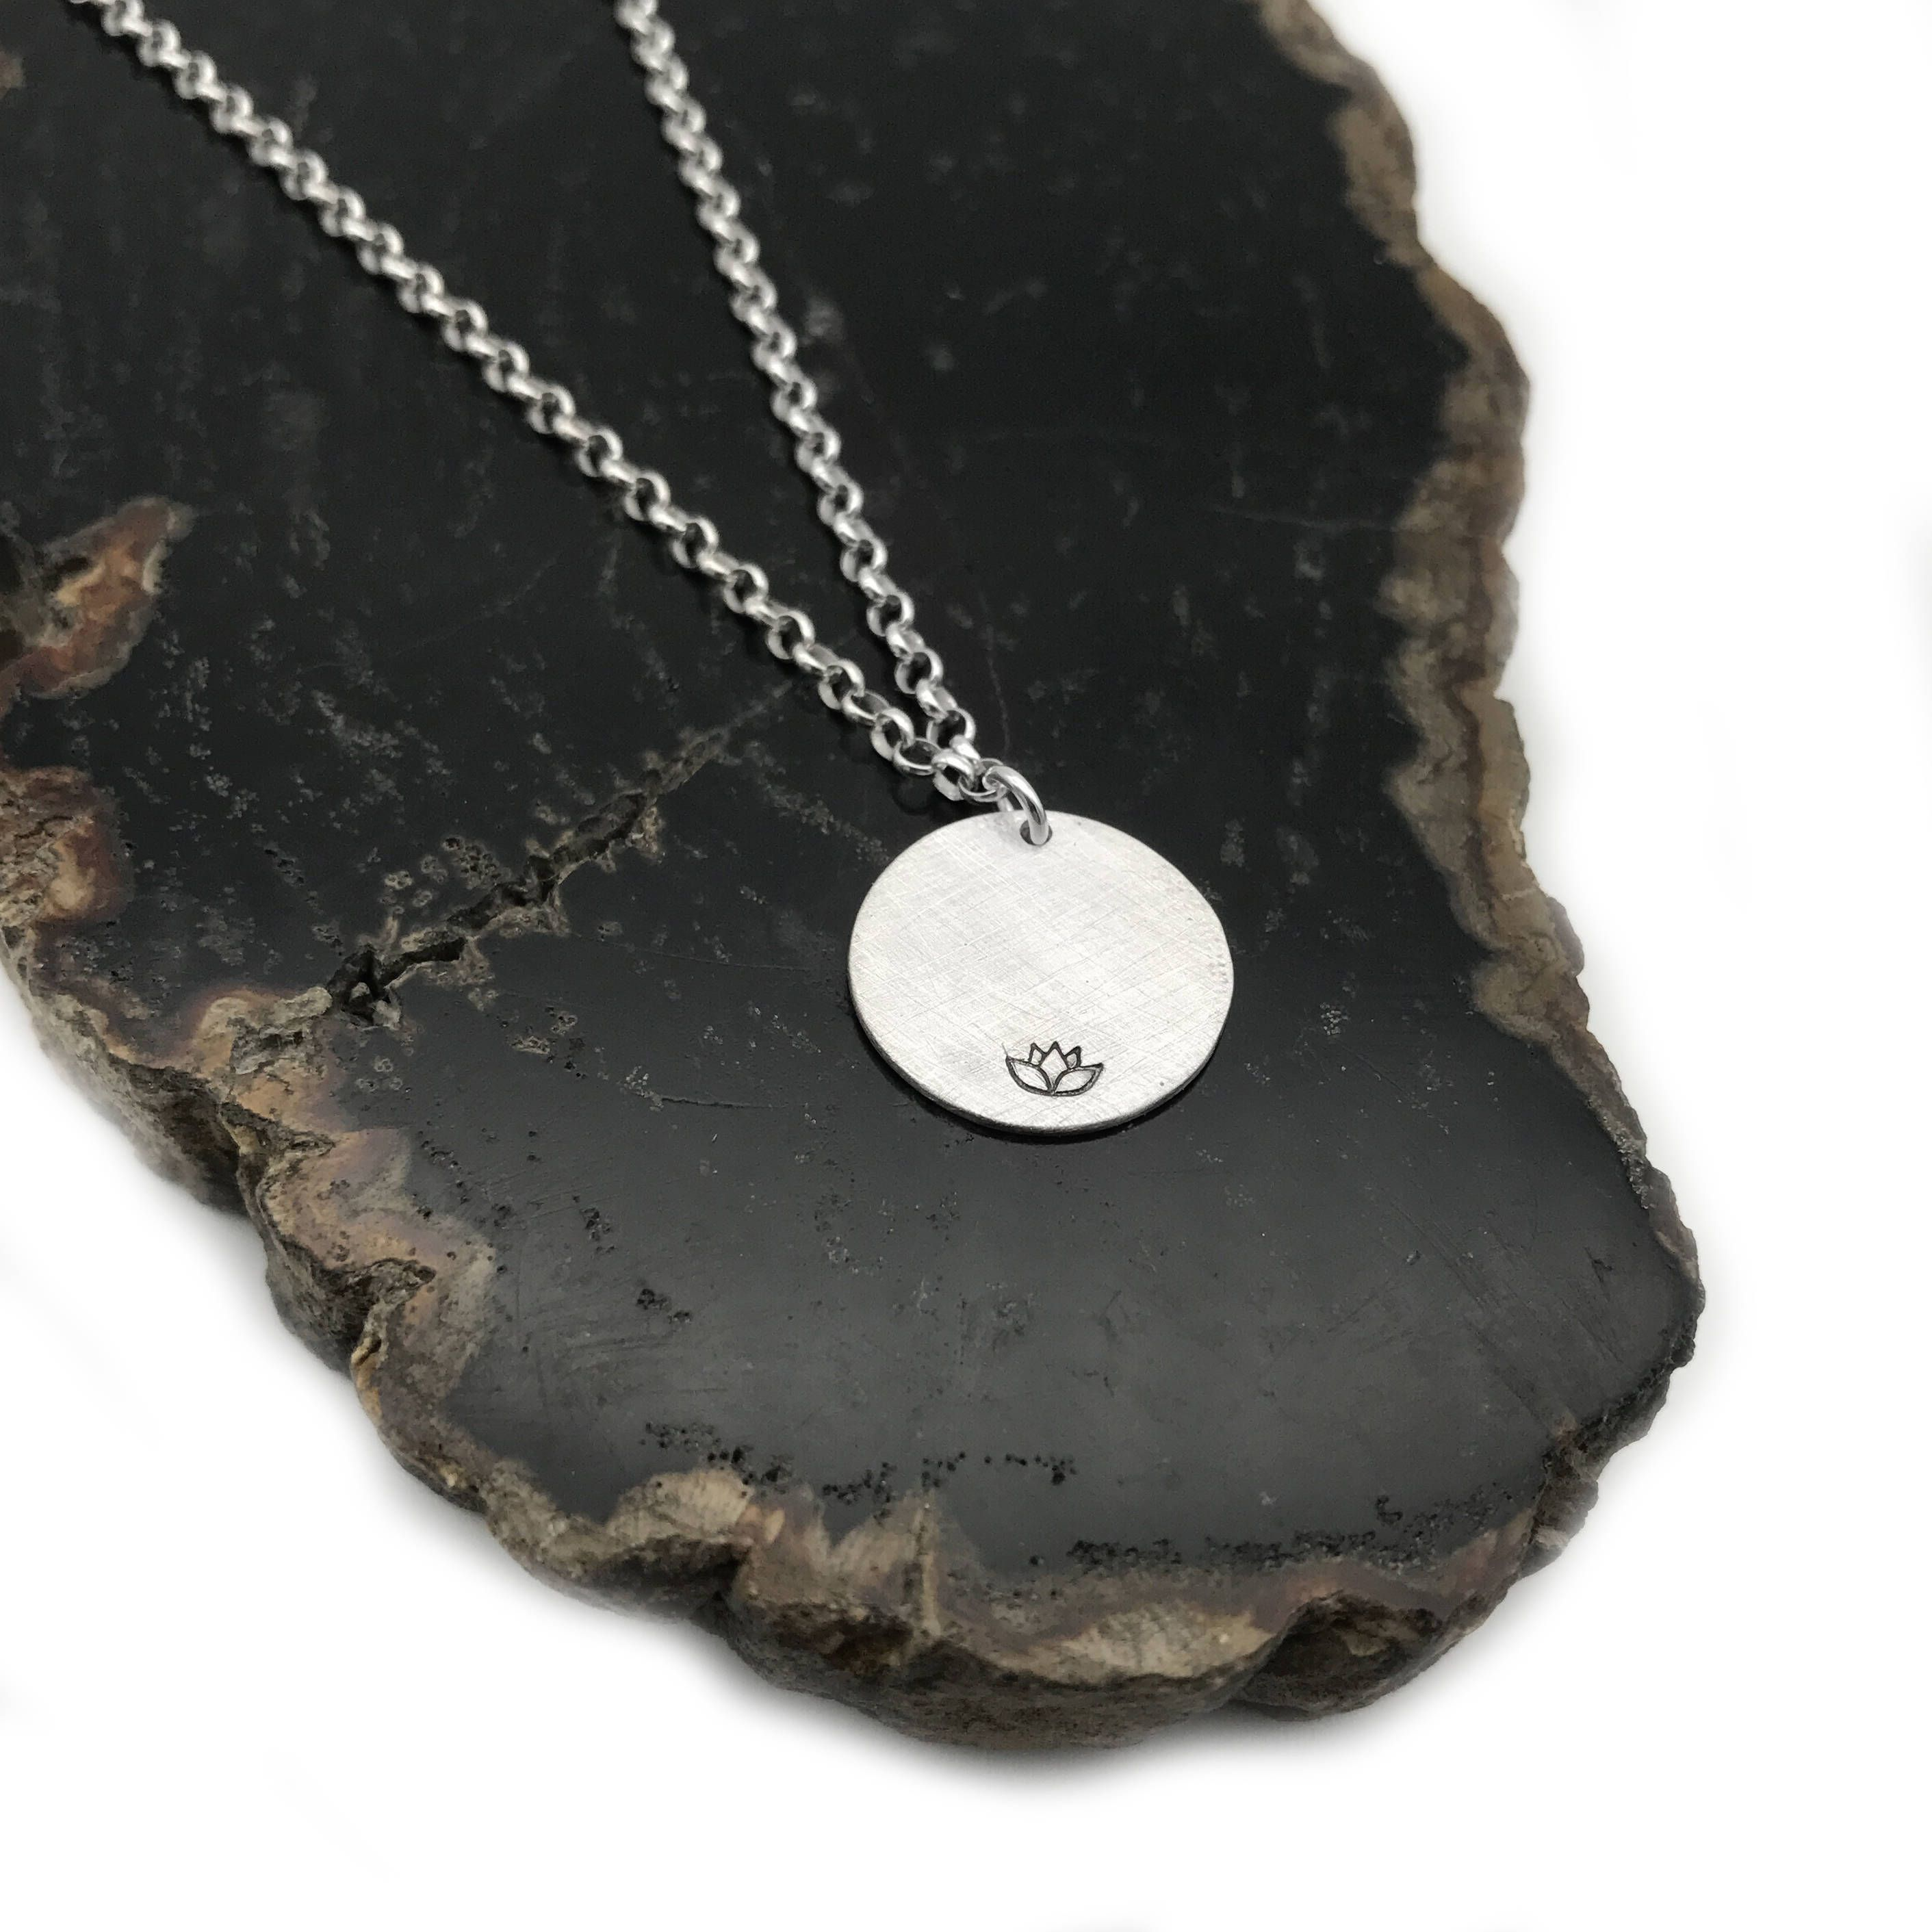 Silver Lotus Necklace Yoga Necklace Round Silver Necklace With